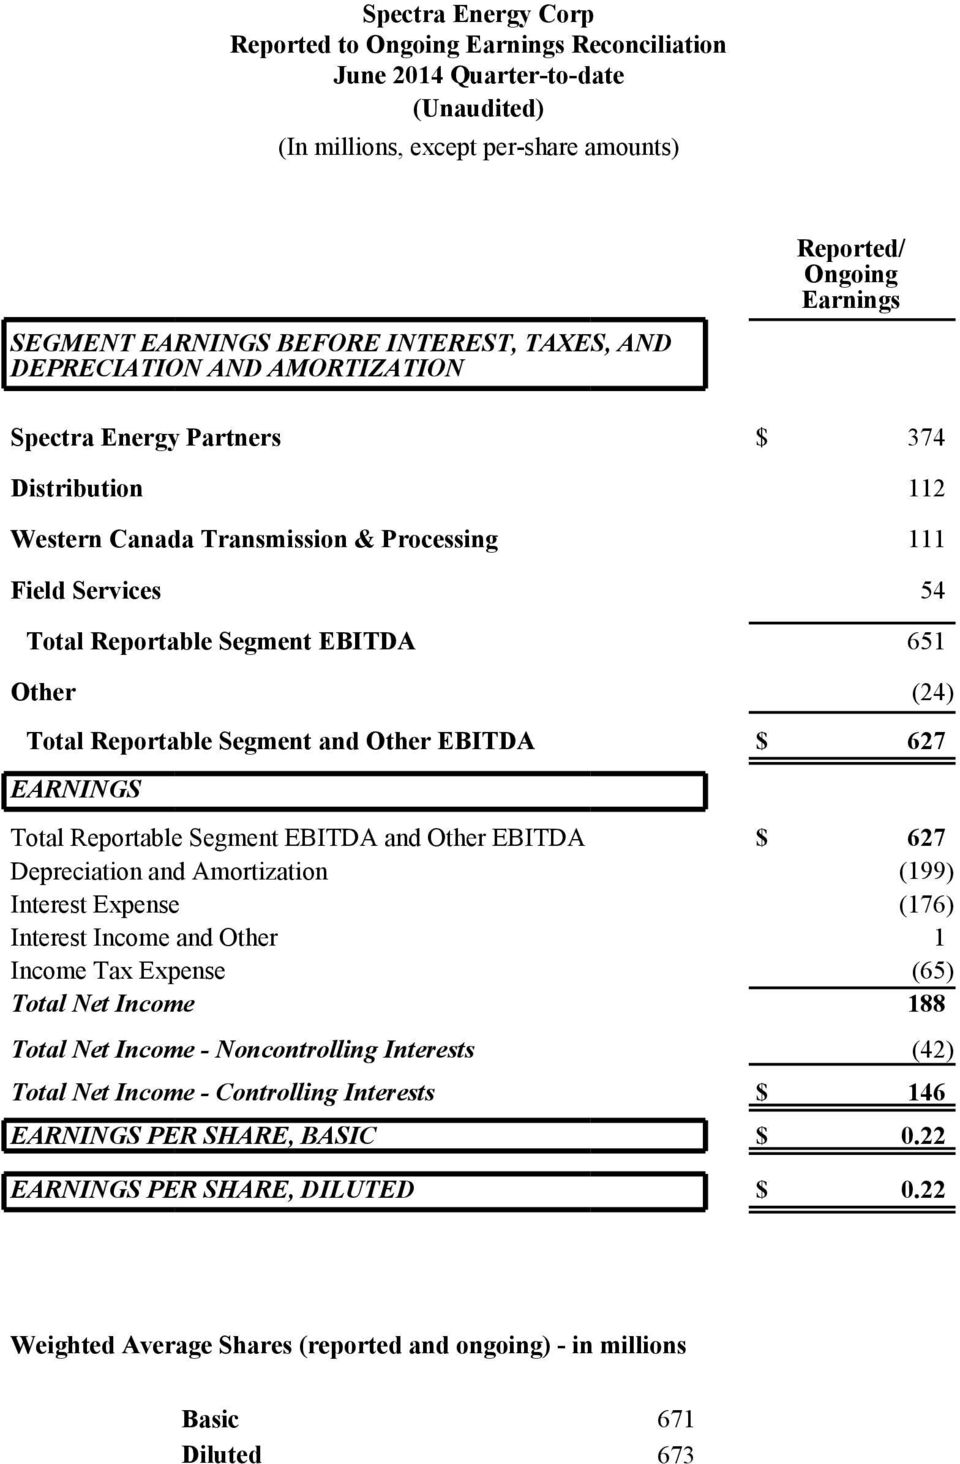 (24) Total Reportable Segment and Other EBITDA $ 627 EARNINGS Total Reportable Segment EBITDA and Other EBITDA $ 627 Depreciation and Amortization (199) Interest Expense (176) Interest Income and